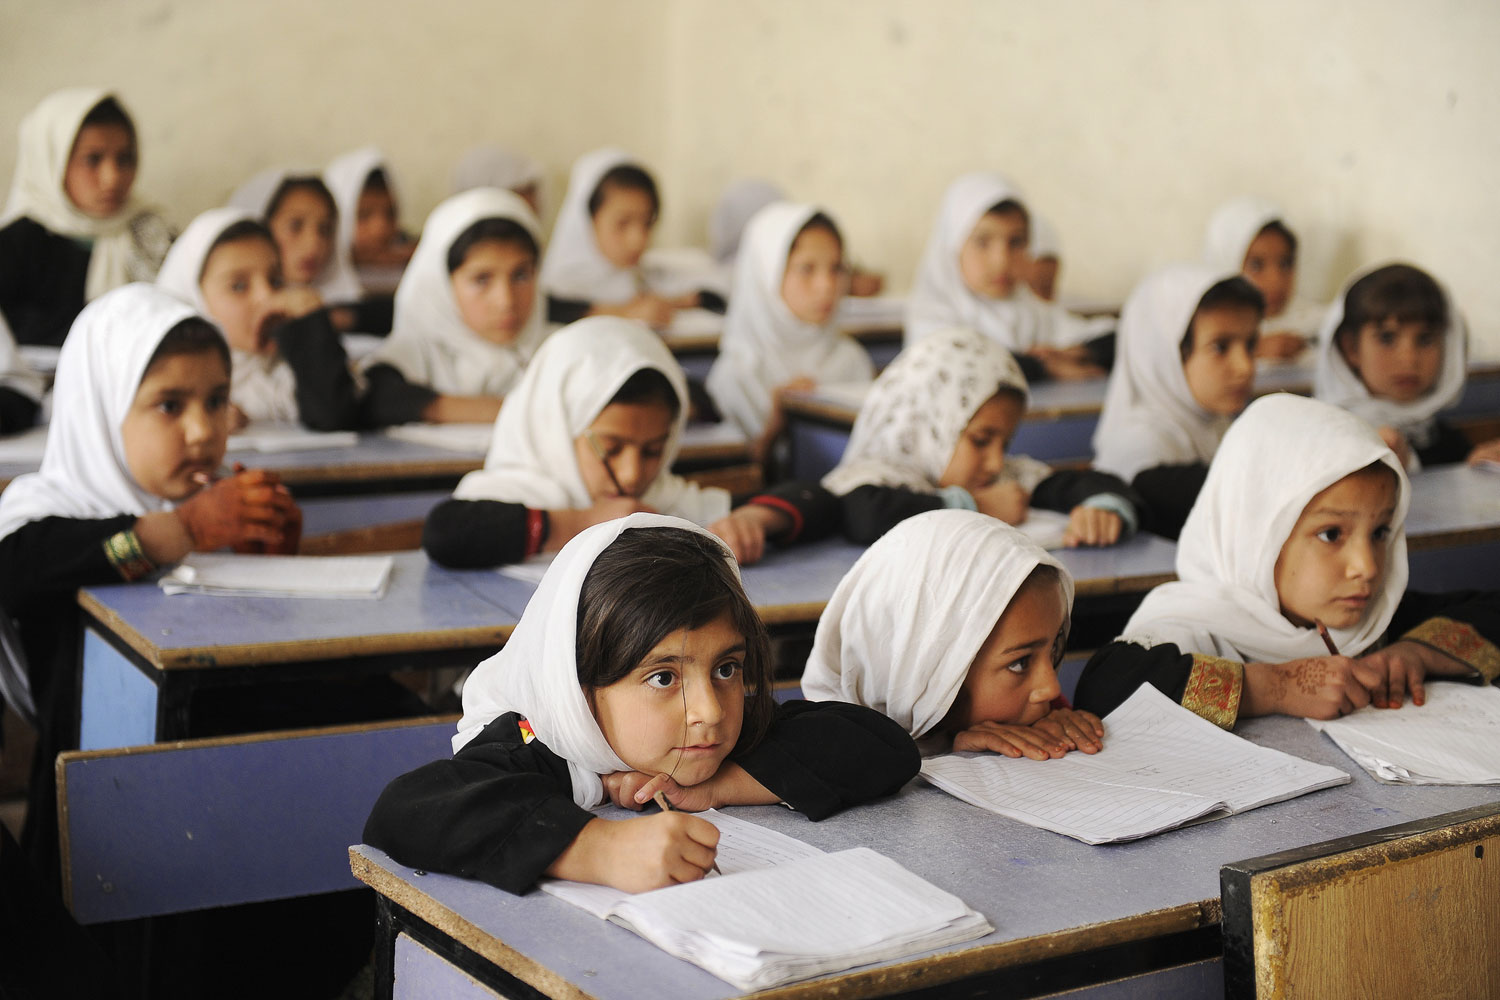 Young girls wearing head scarves attending school in Kandahar, Afghanistan.